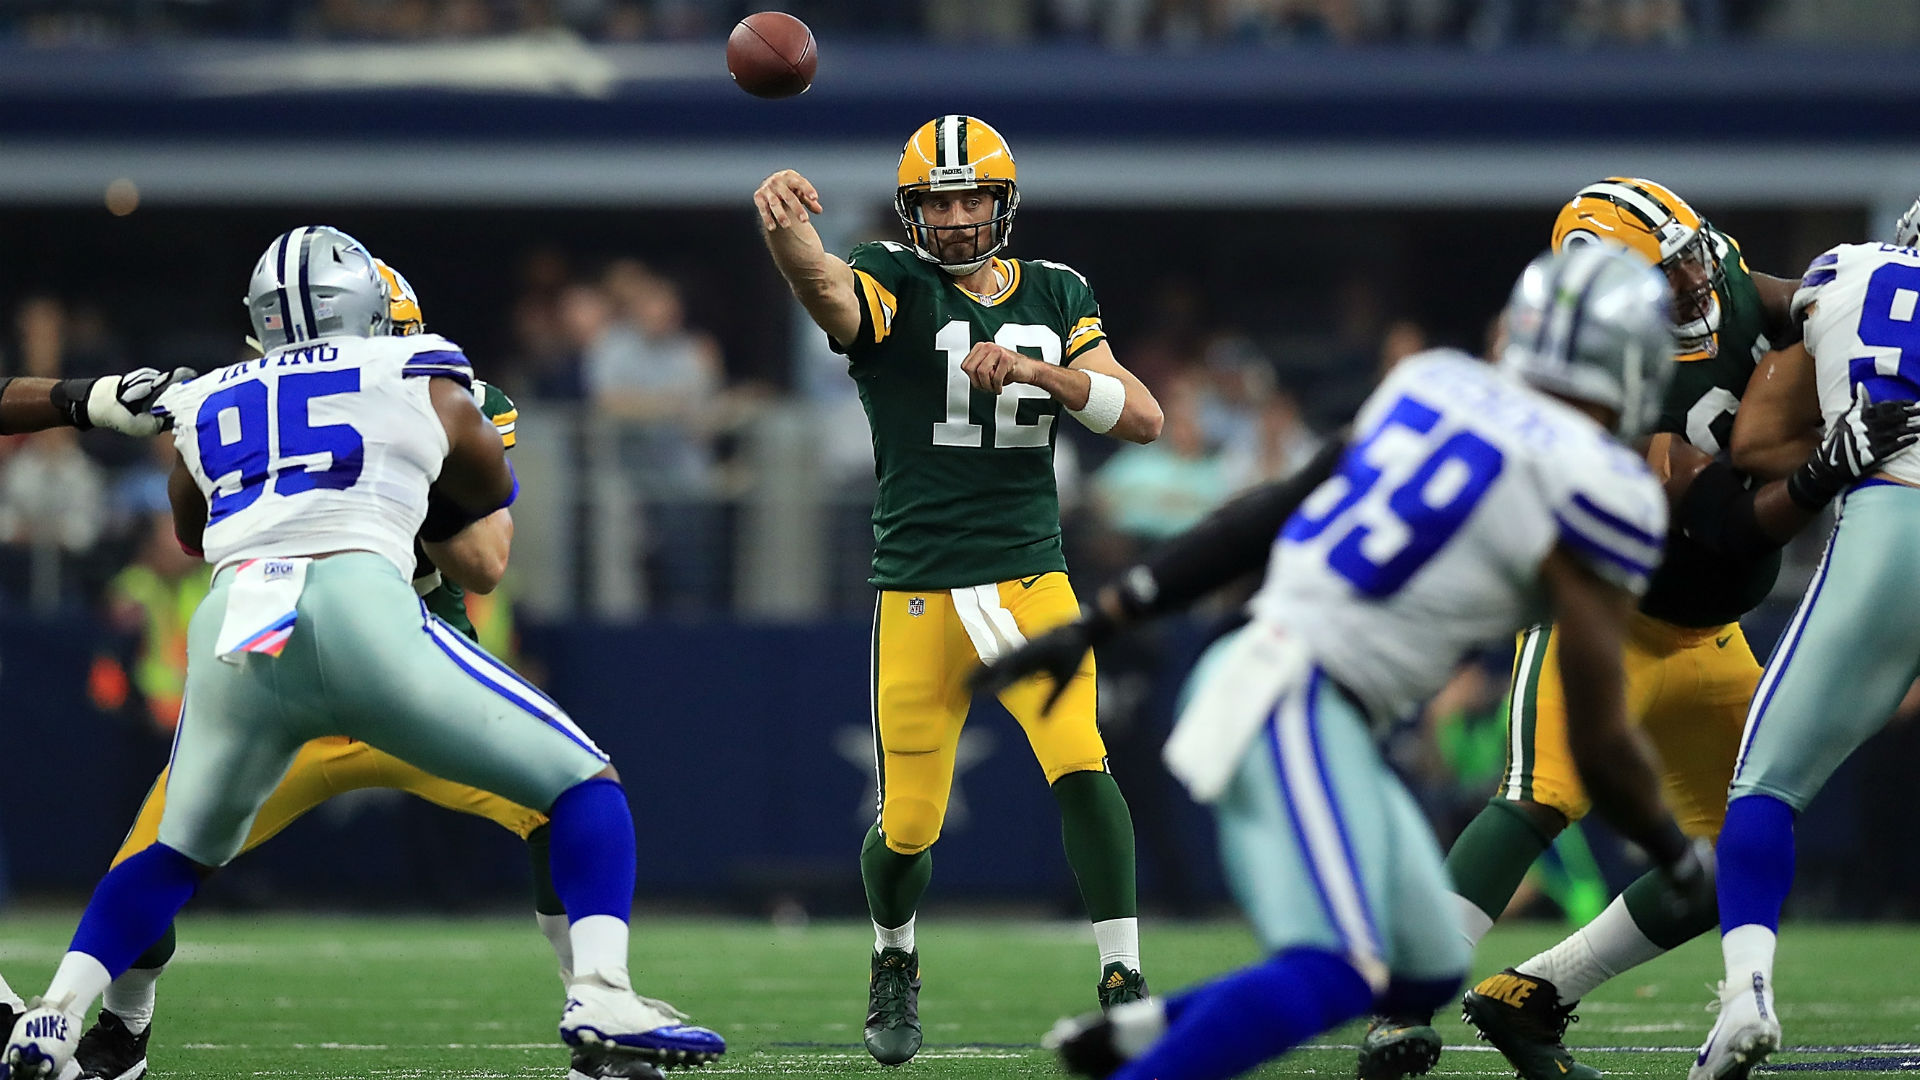 Answering questions about the Green Bay Packers